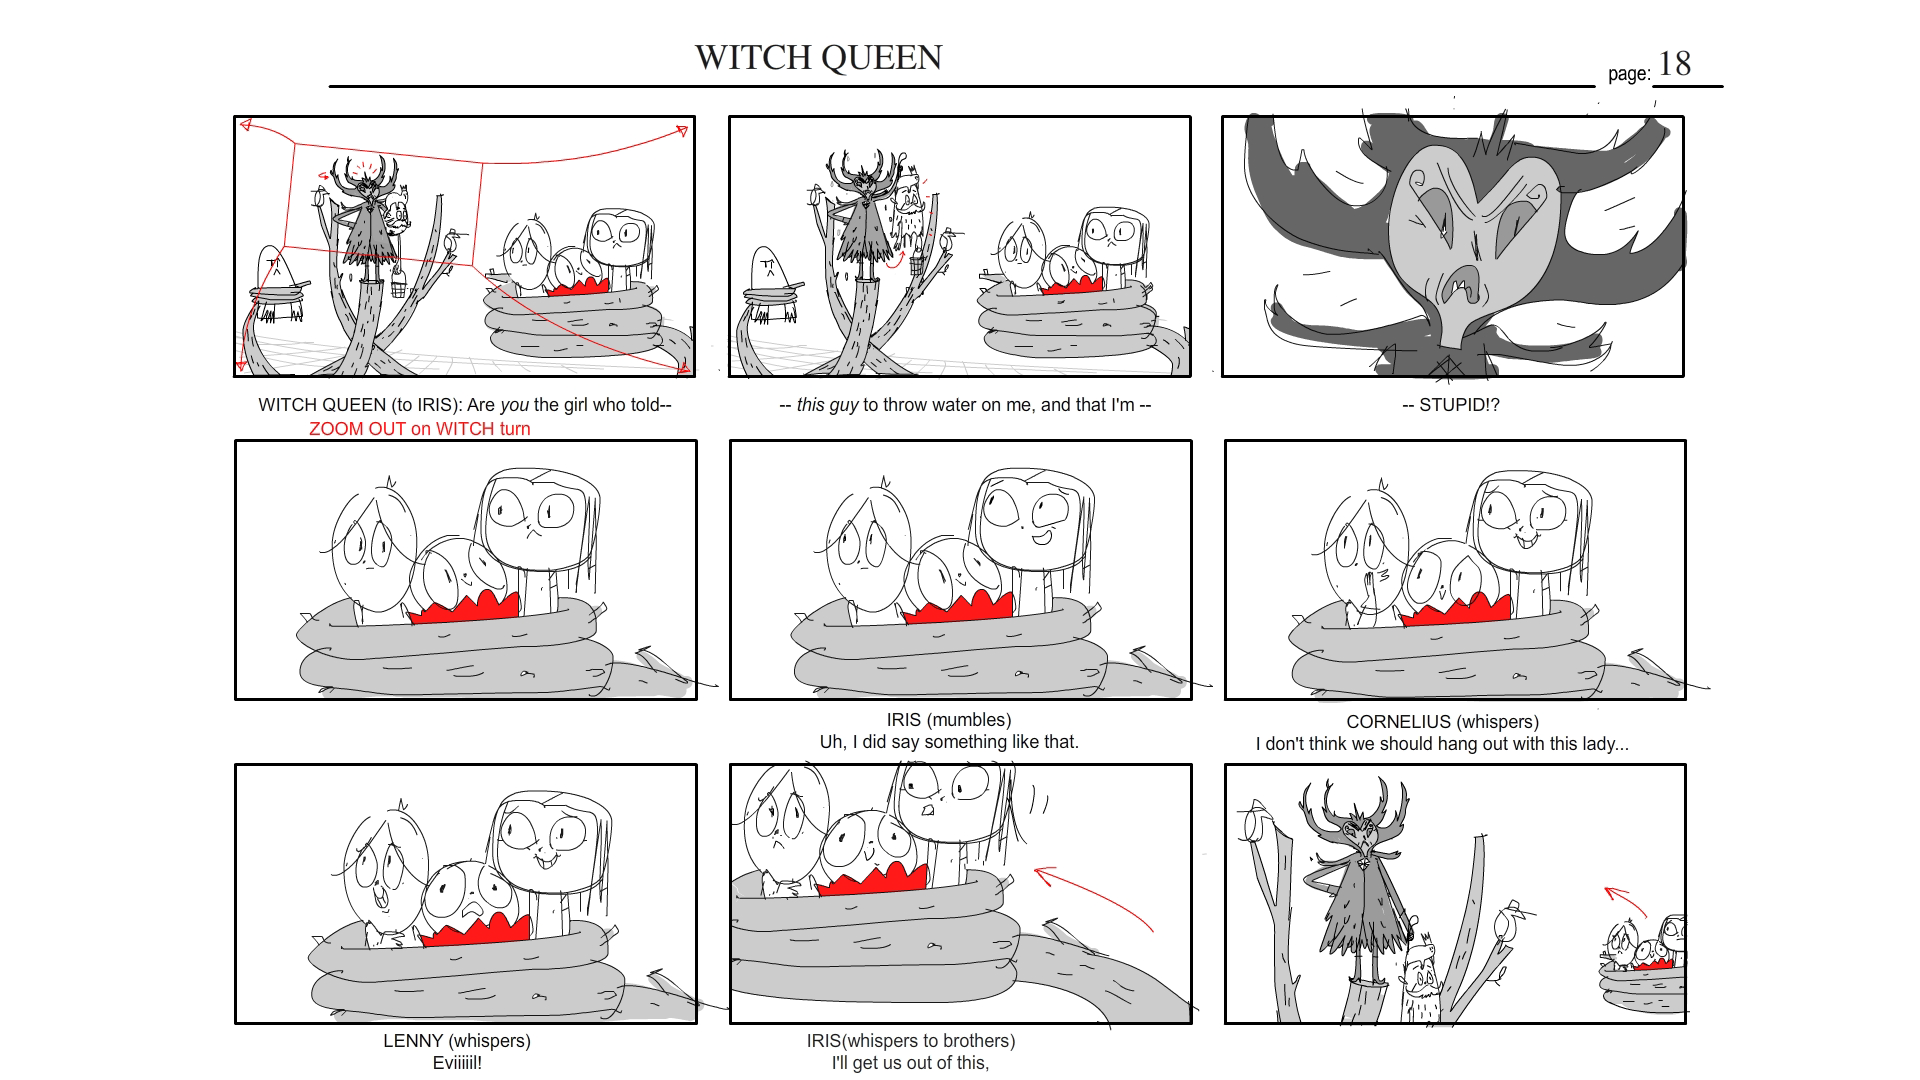 MikeOwens_STORYBOARDS_Iris_Page_27.png